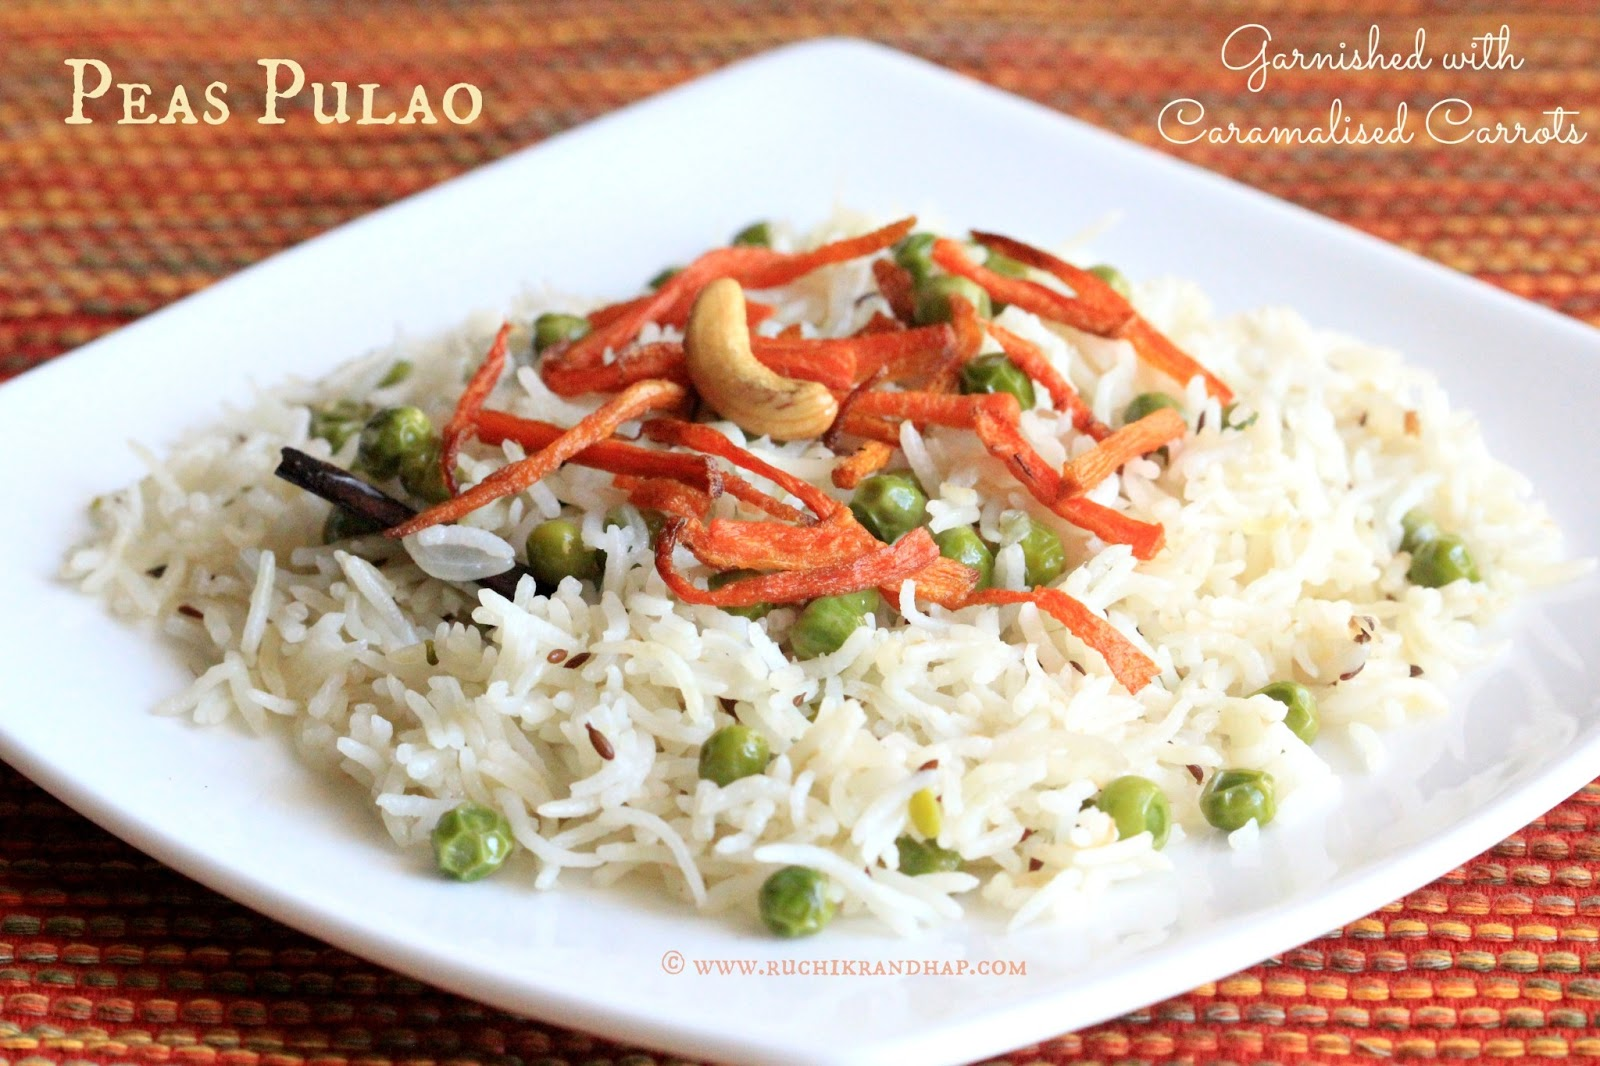 ... (Delicious Cooking): Recipe Index - Rice, Pasta & One Pot Meals